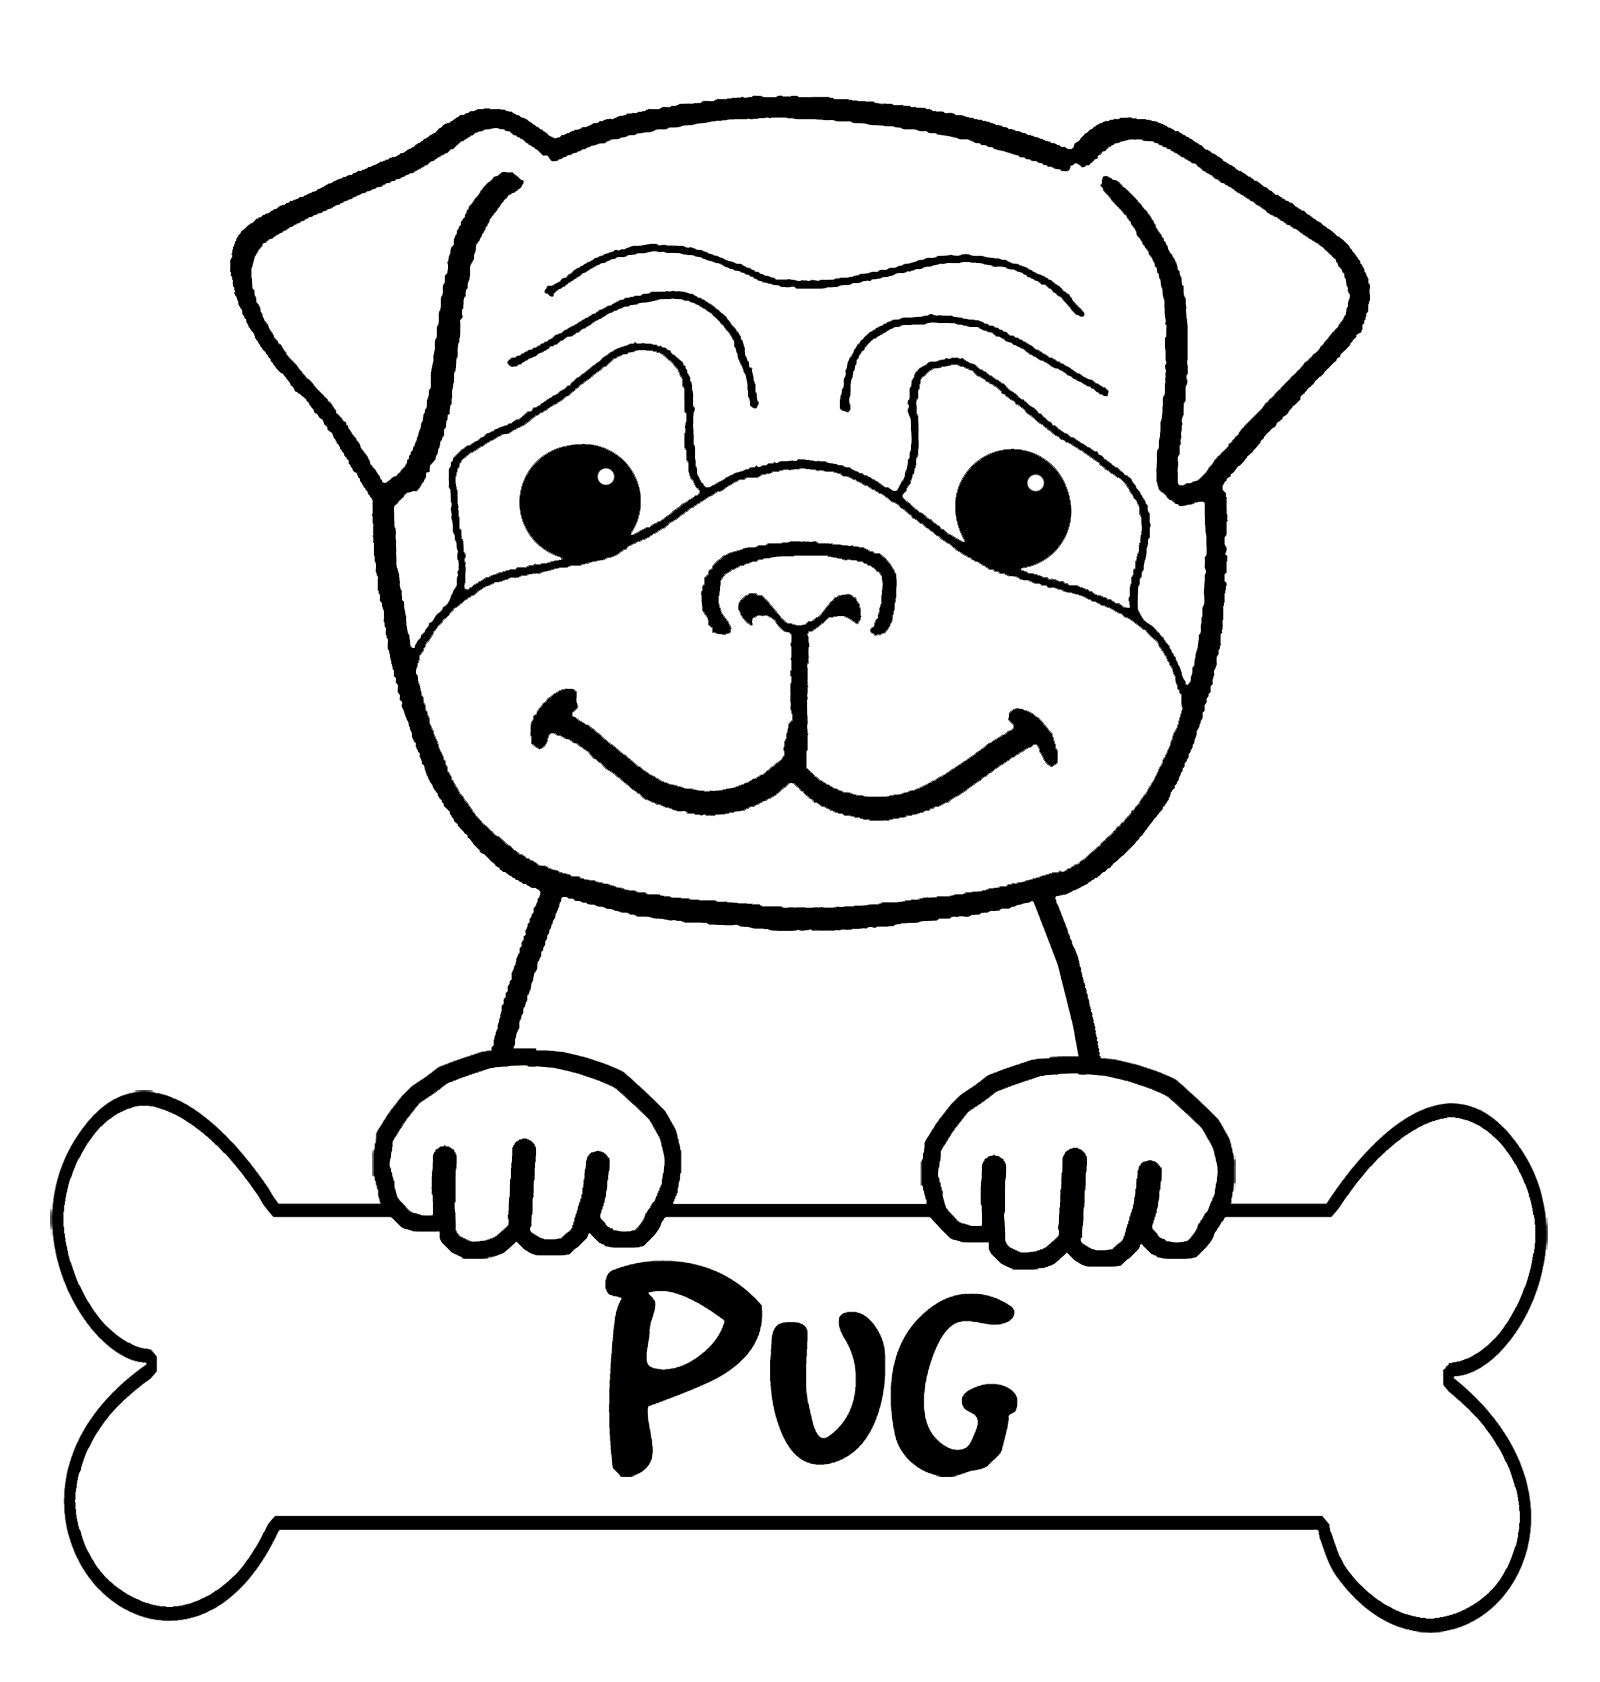 free printable dog coloring pages pug coloring pages best coloring pages for kids printable free coloring pages dog